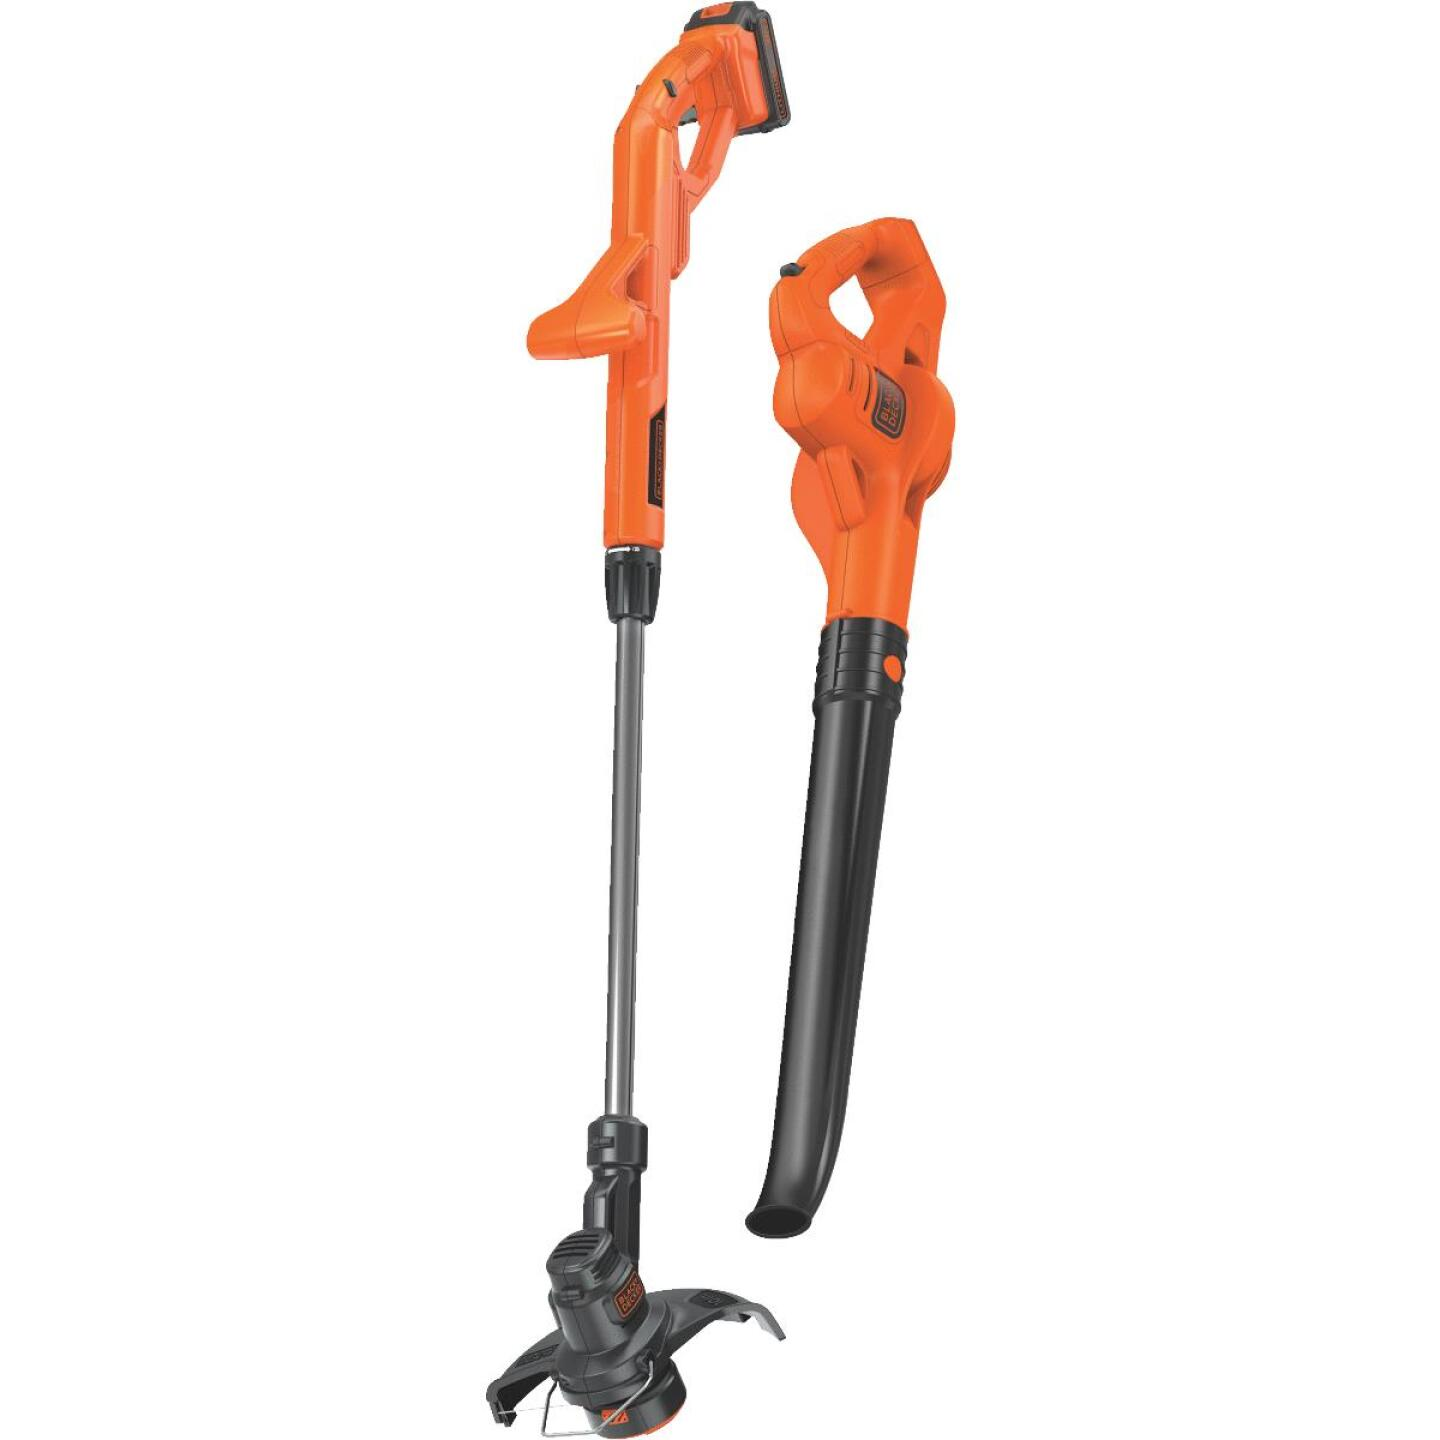 Black & Decker Max 20V String Trimmer & Sweeper Combo Kit Image 1